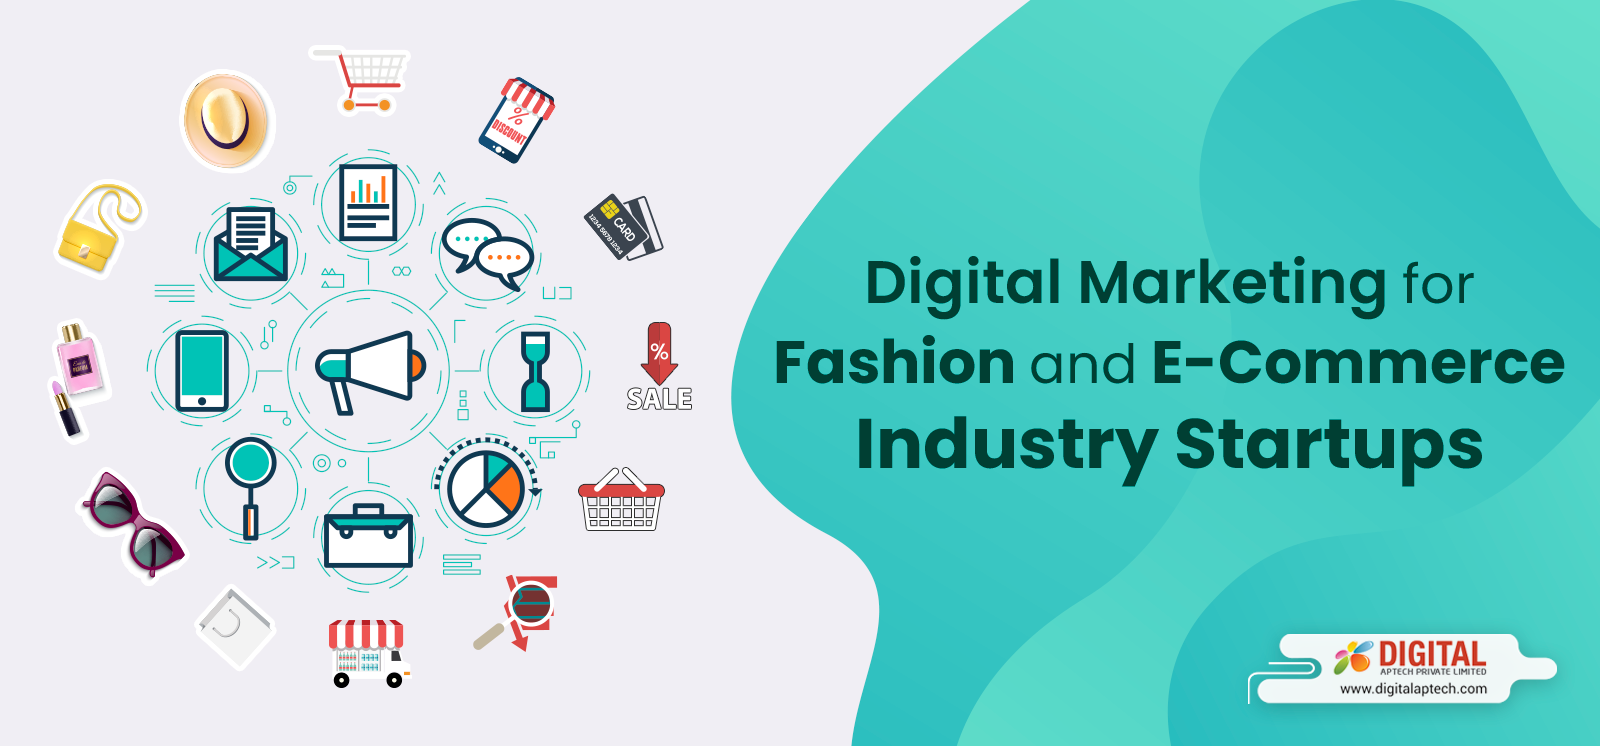 Why is Digital Marketing Important for Fashion and E-Commerce Industry Startups?